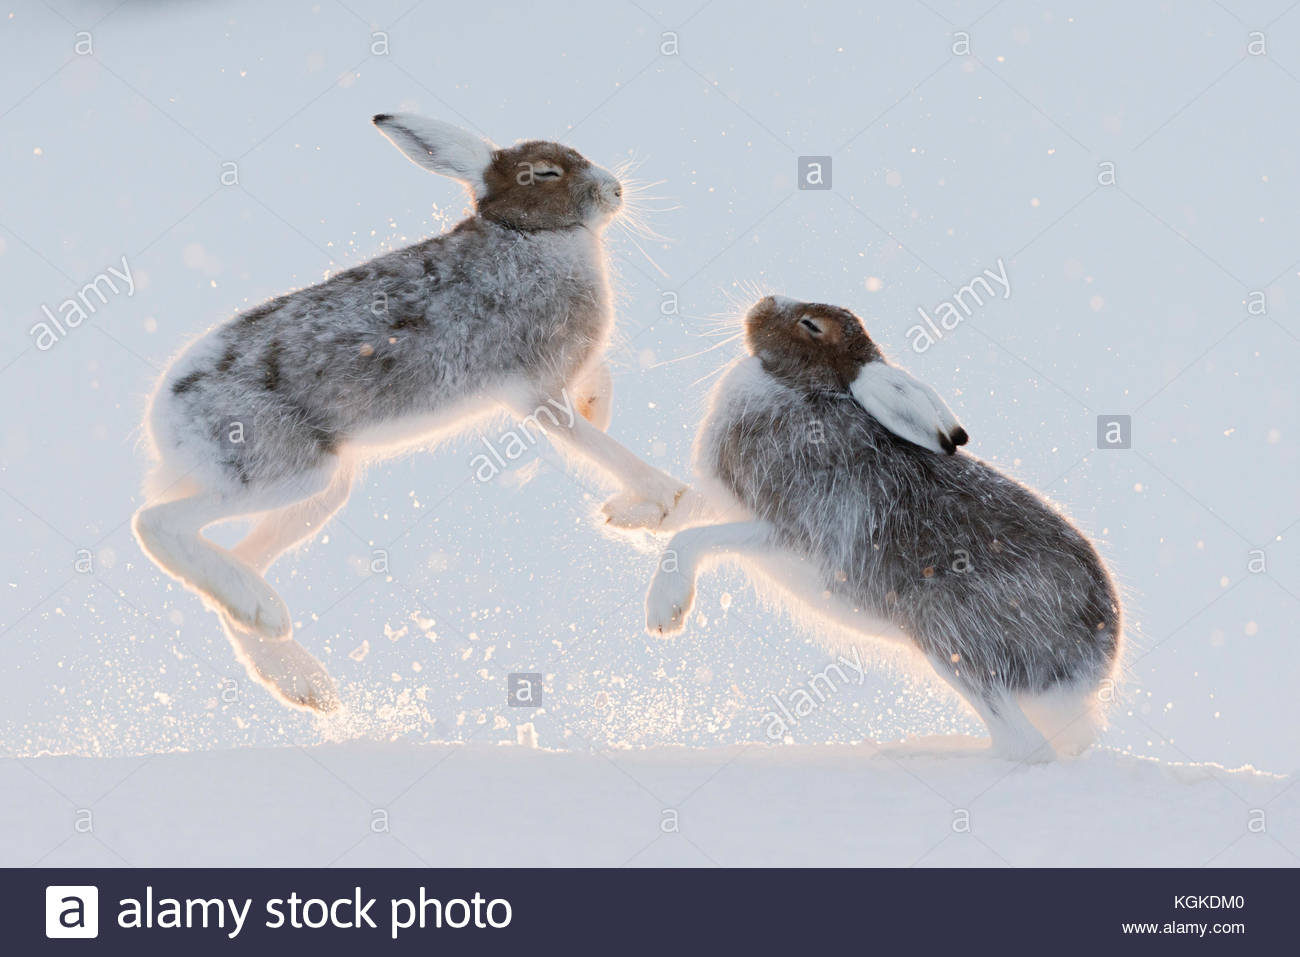 Lièvre, Lepus timidus, combats. Photo Stock